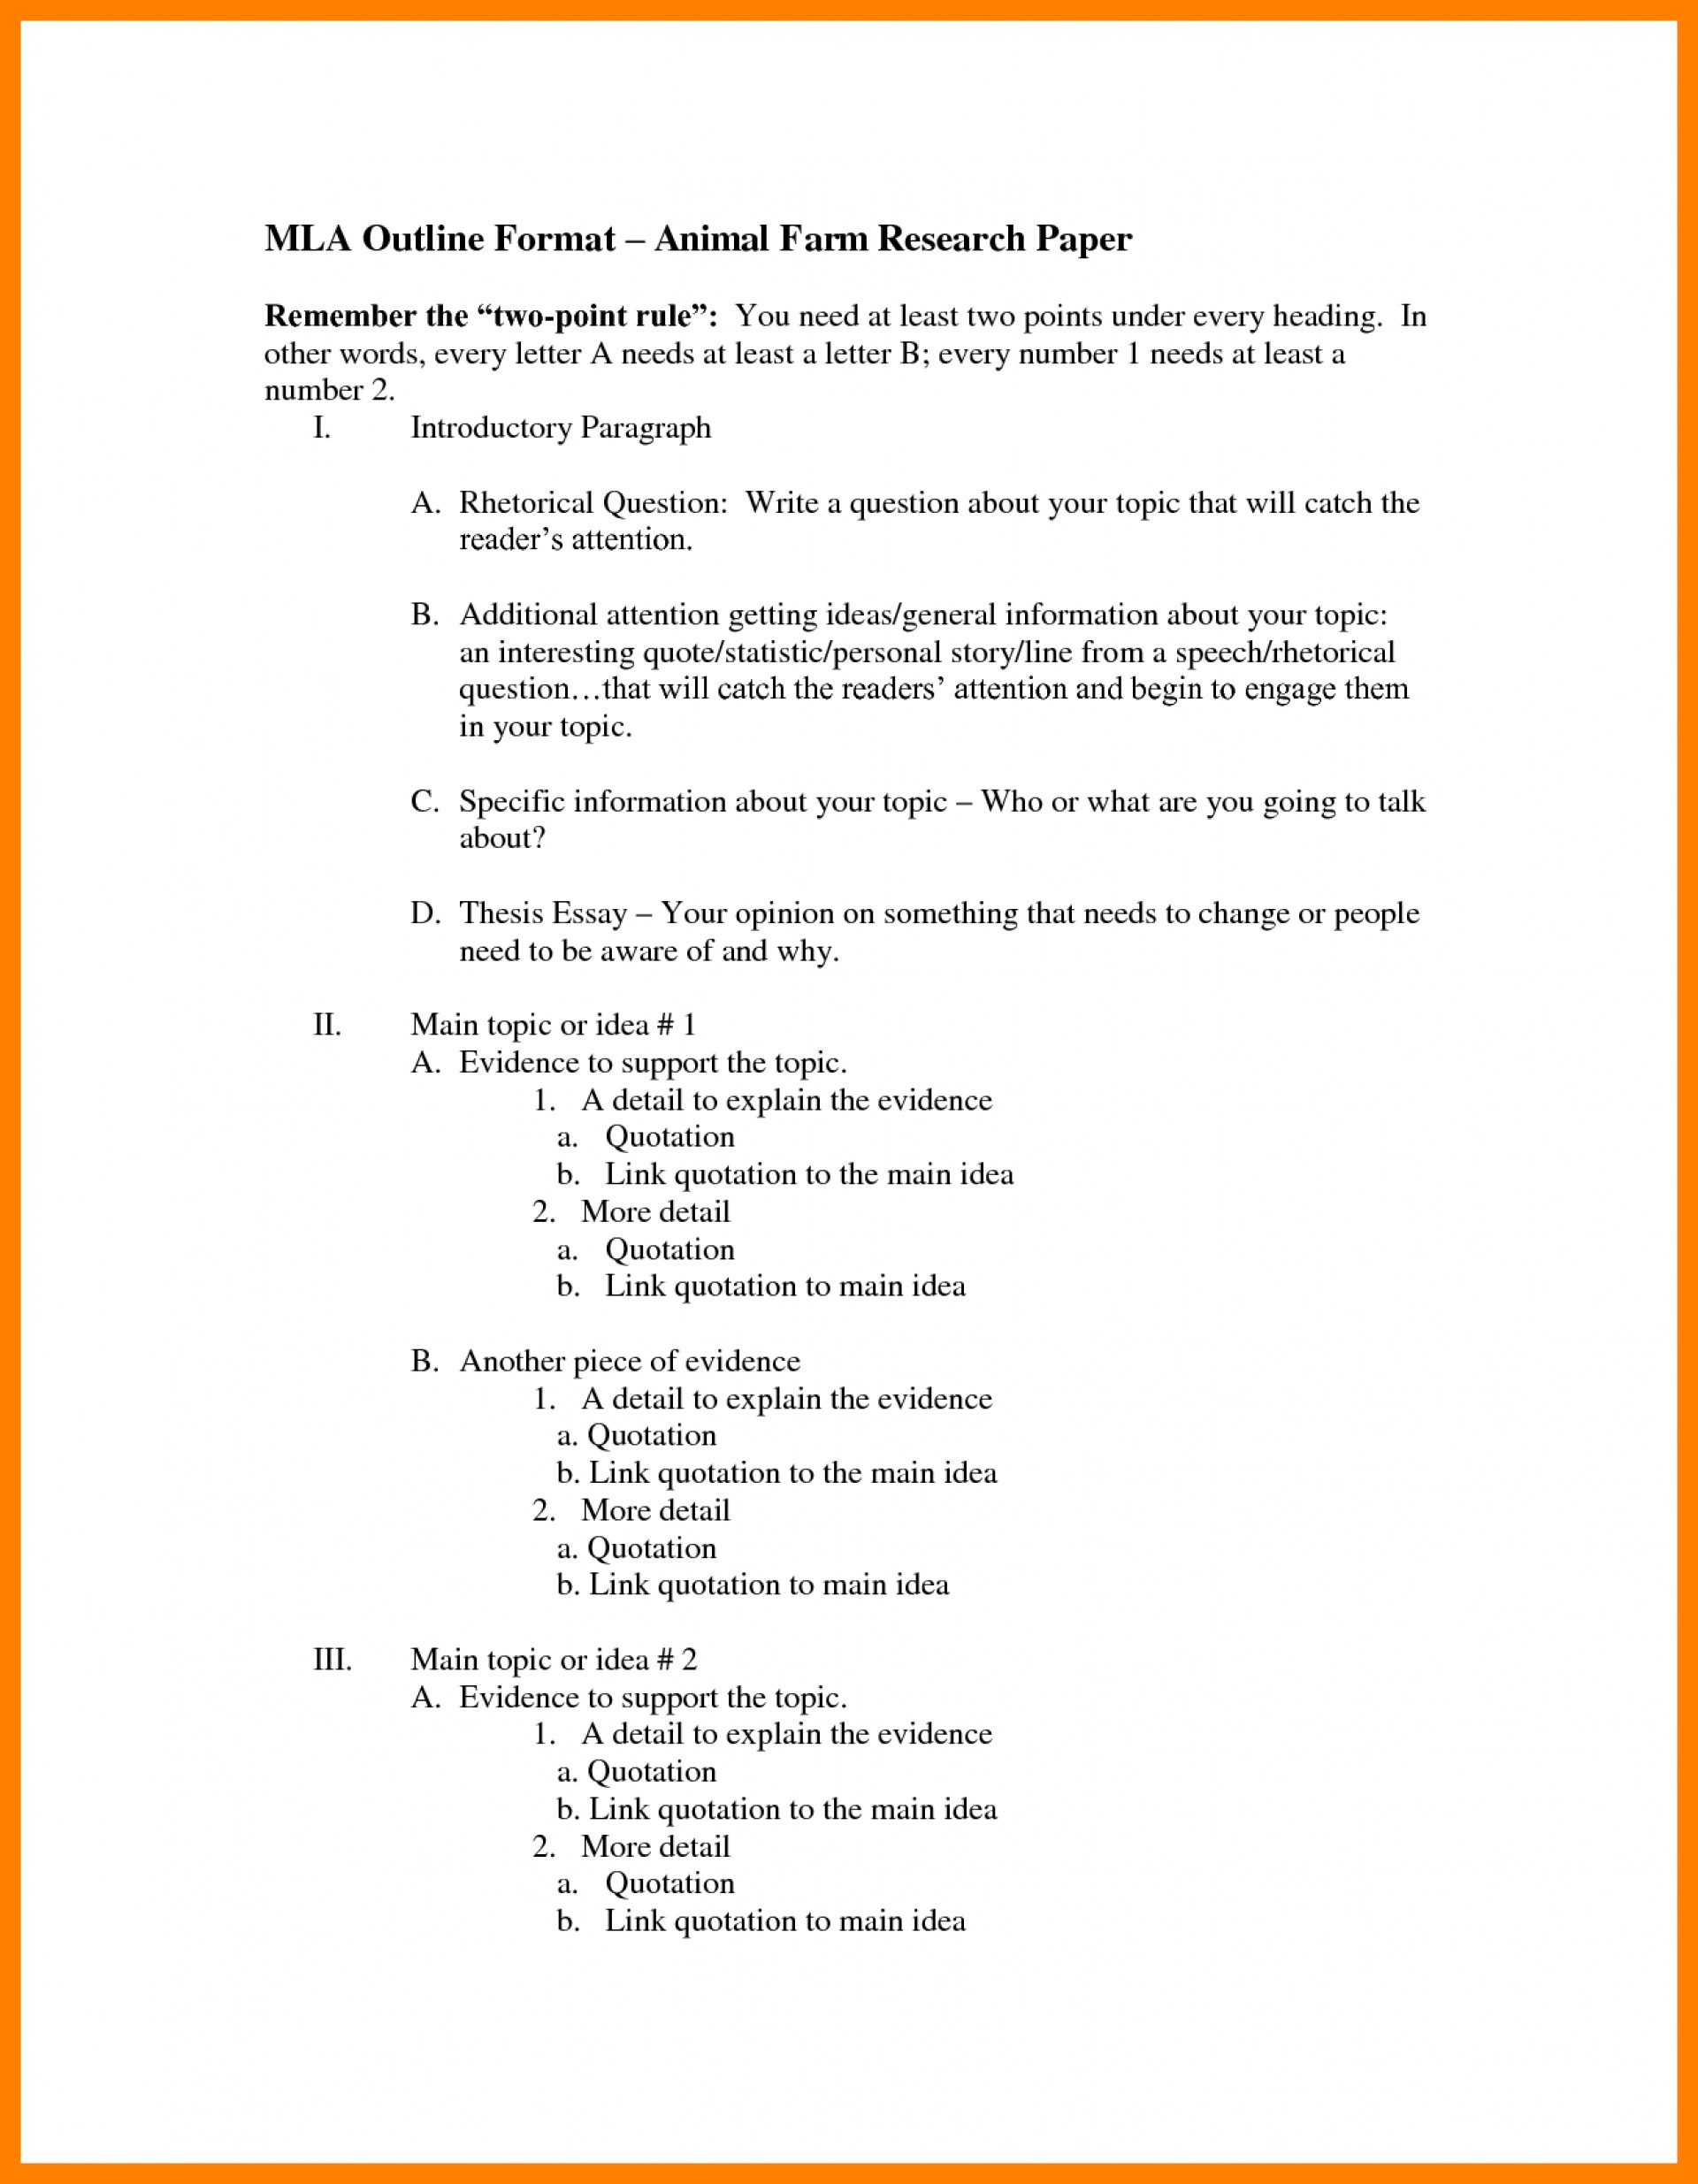 009 Mla Researchr Outline Bunch Ideas Of Example Brilliant Unbelievable 8 Research Paper 1920